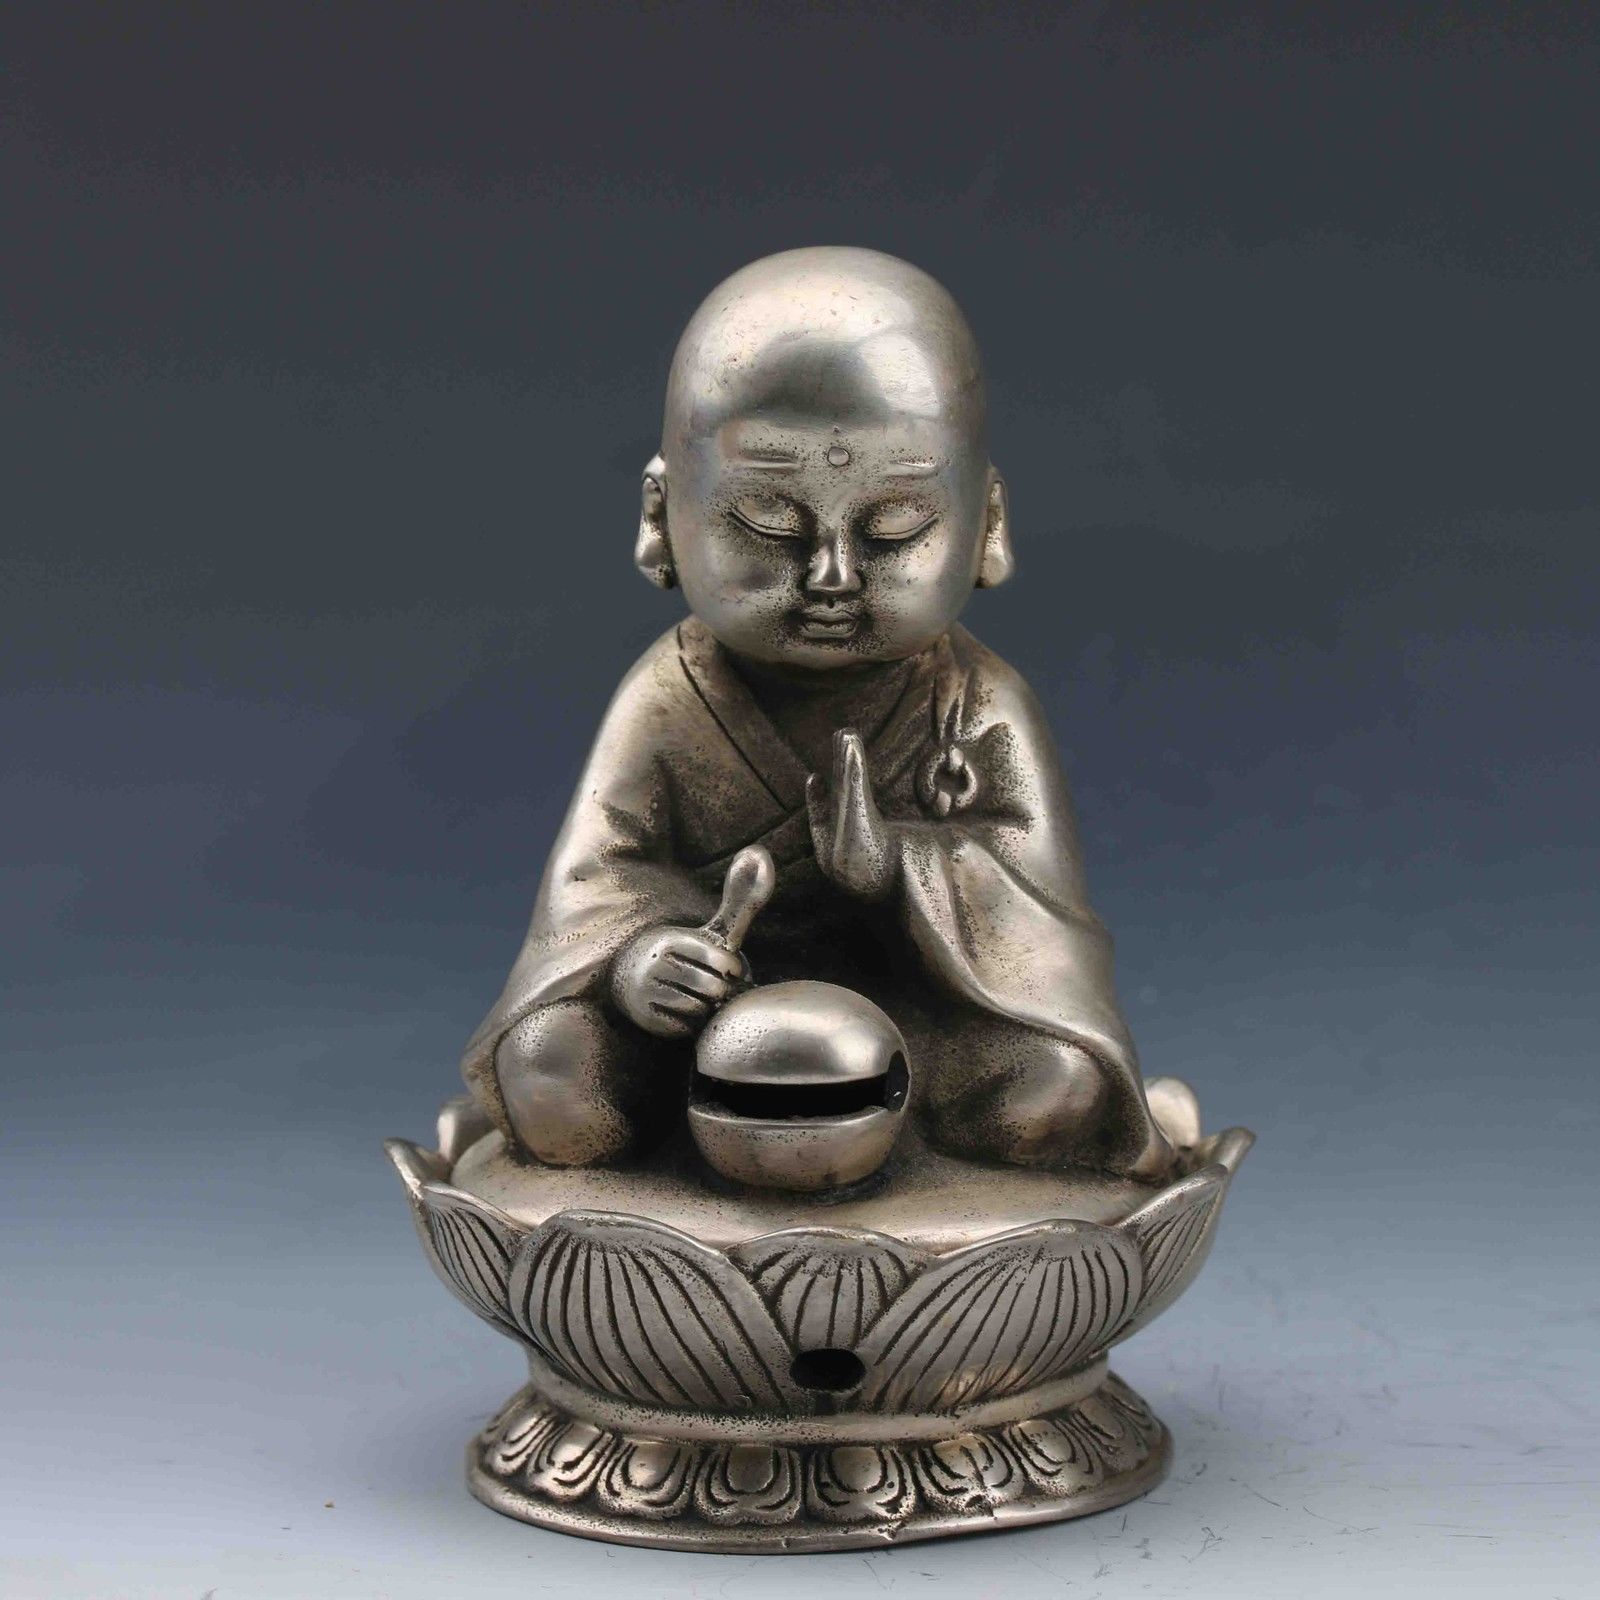 Chinese Miao Silver Hand-Carved Incense Burner&Seated Buddha LidChinese Miao Silver Hand-Carved Incense Burner&Seated Buddha Lid